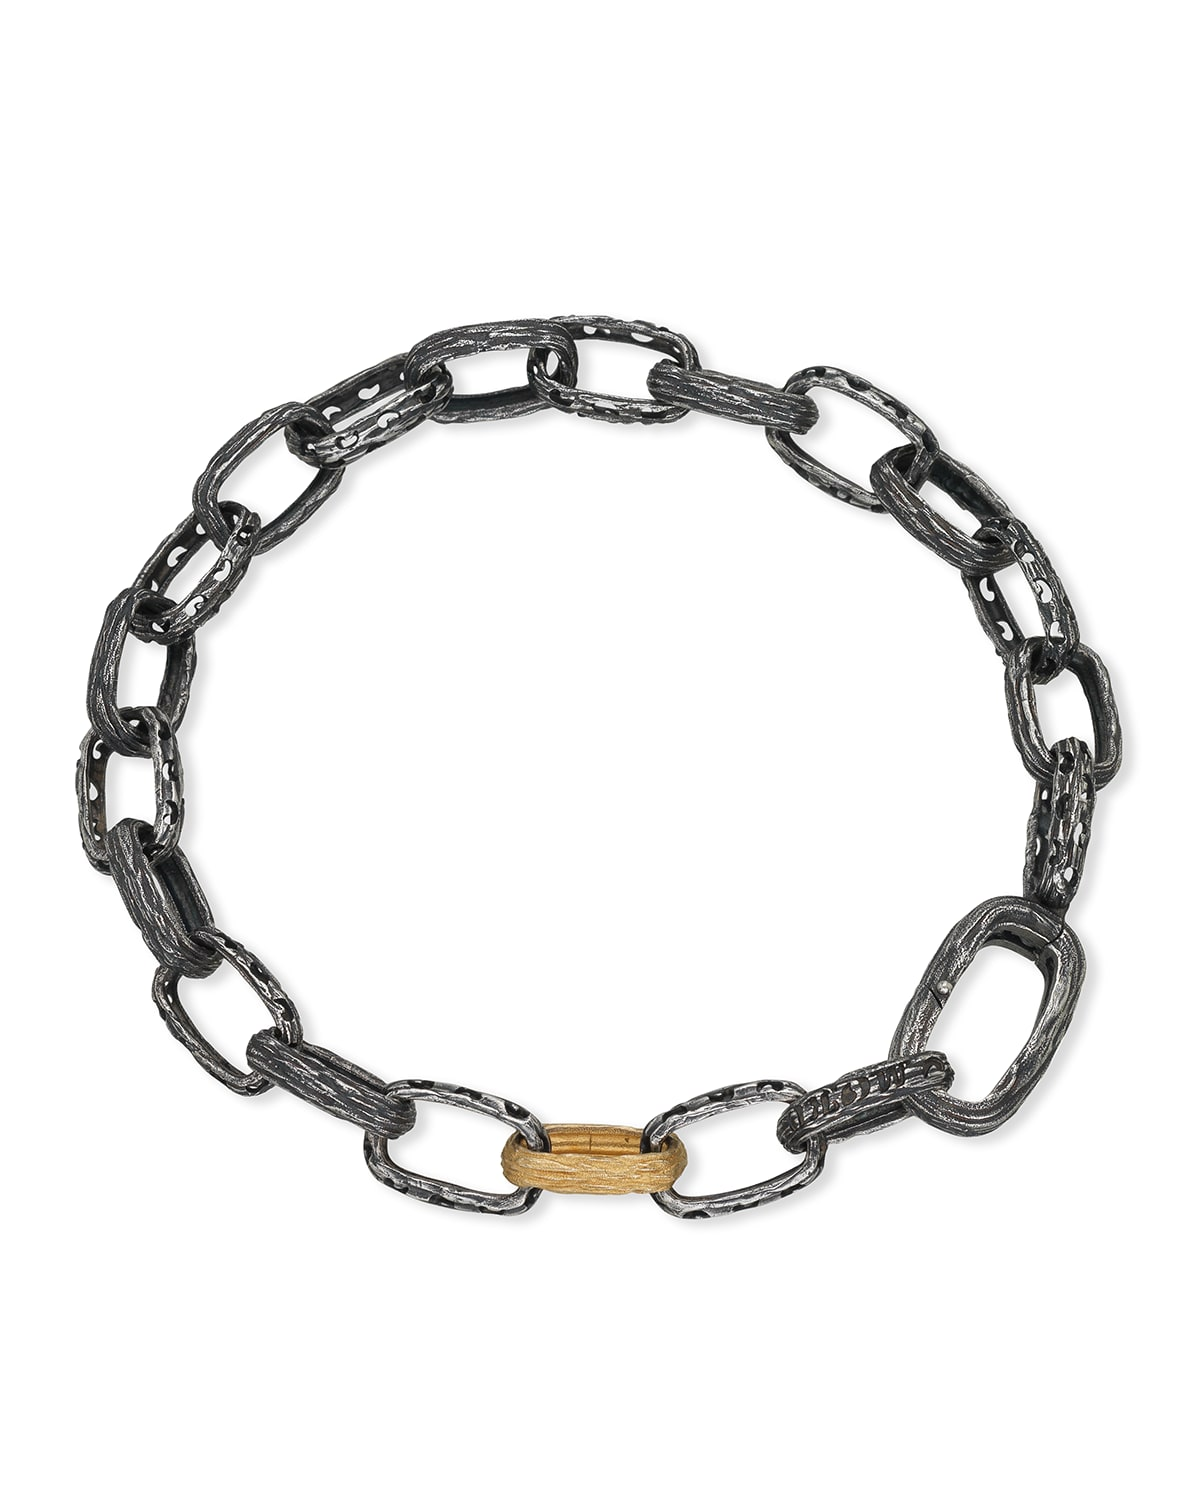 The Warrior Link Bracelet in Oxidized Silver with 18k Gold